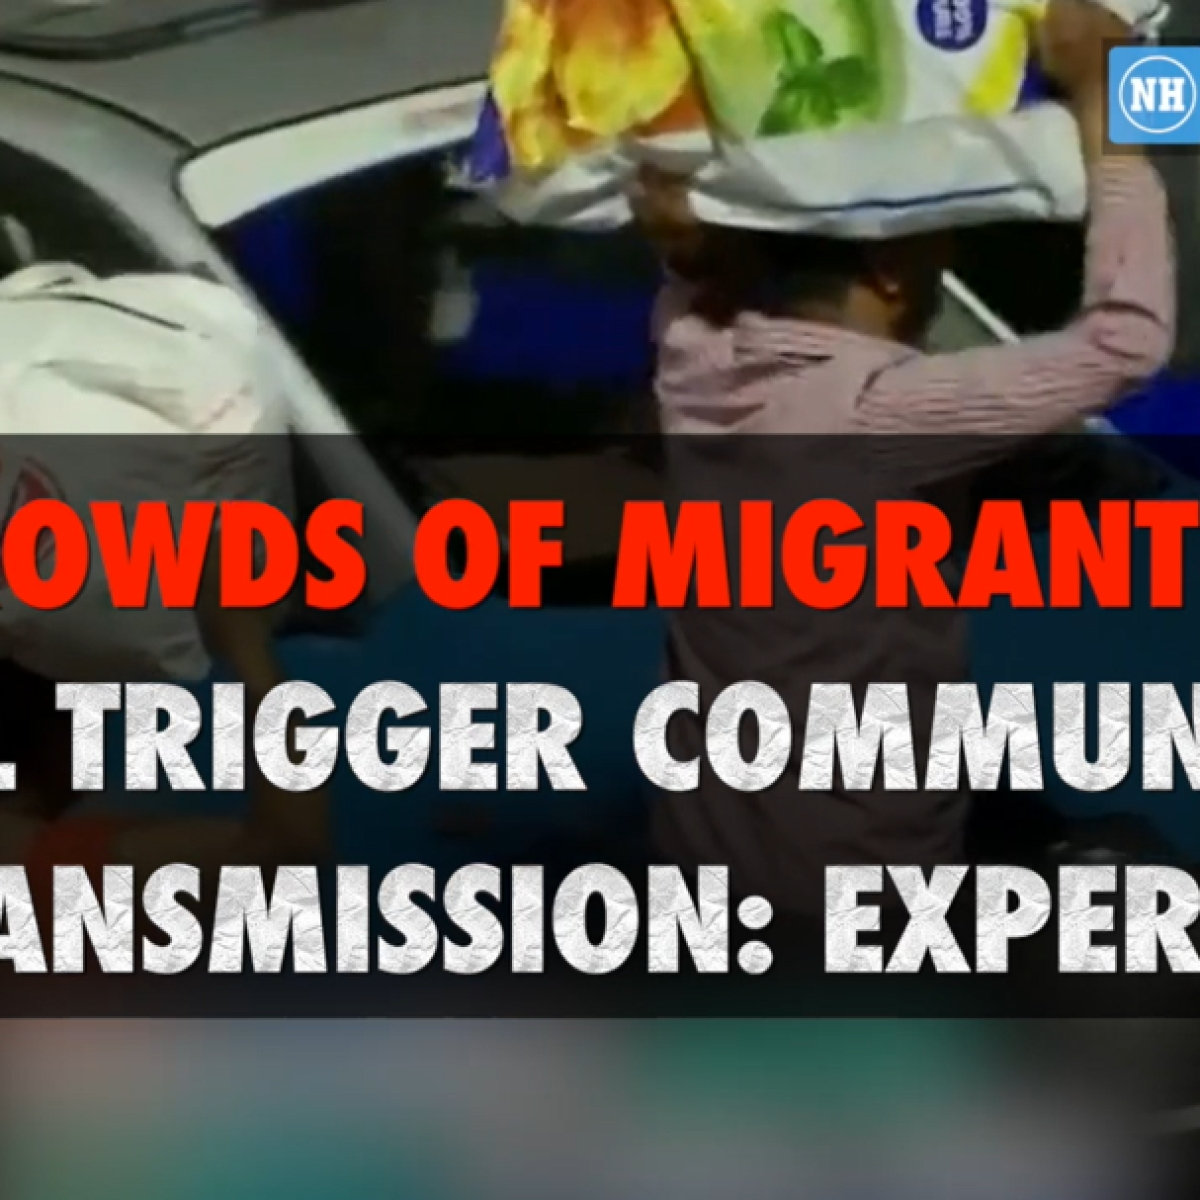 Crowds of migrants will trigger community transmission: Experts